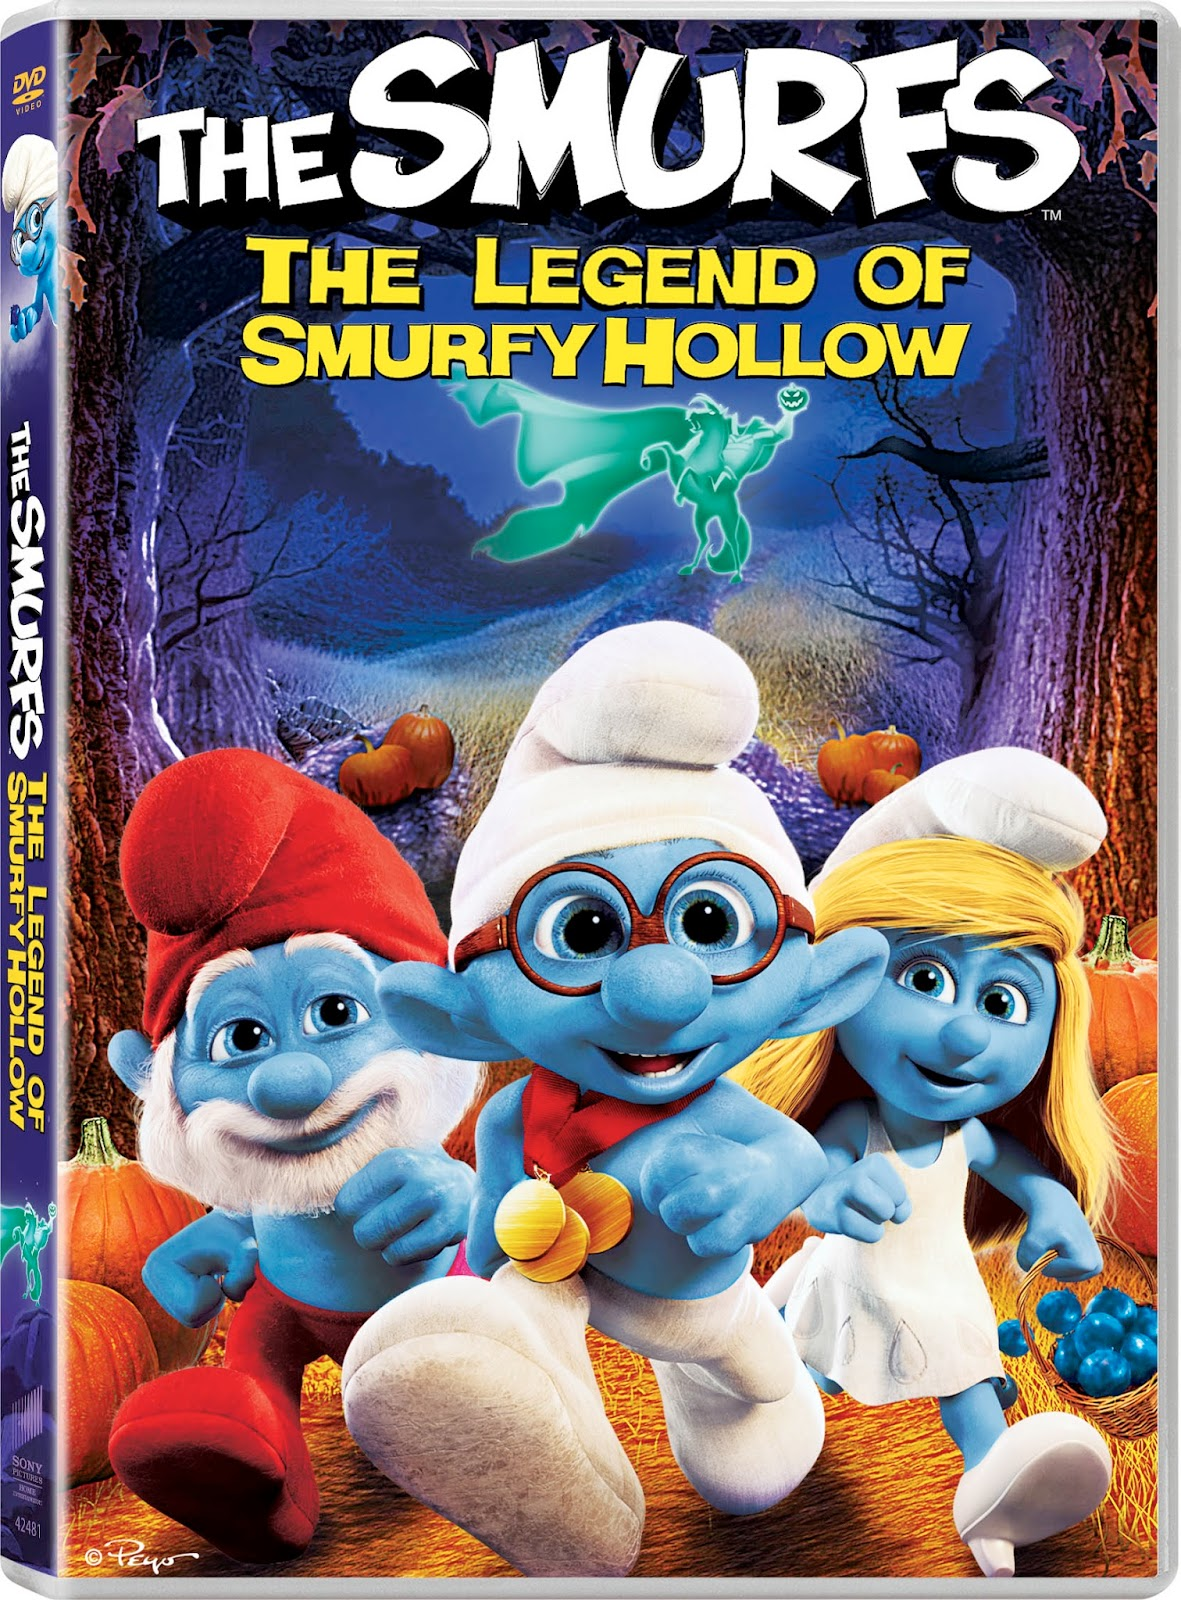 The Smurfs The Legend of Smurfy Hollow (2013) ταινιες online seires xrysoi greek subs